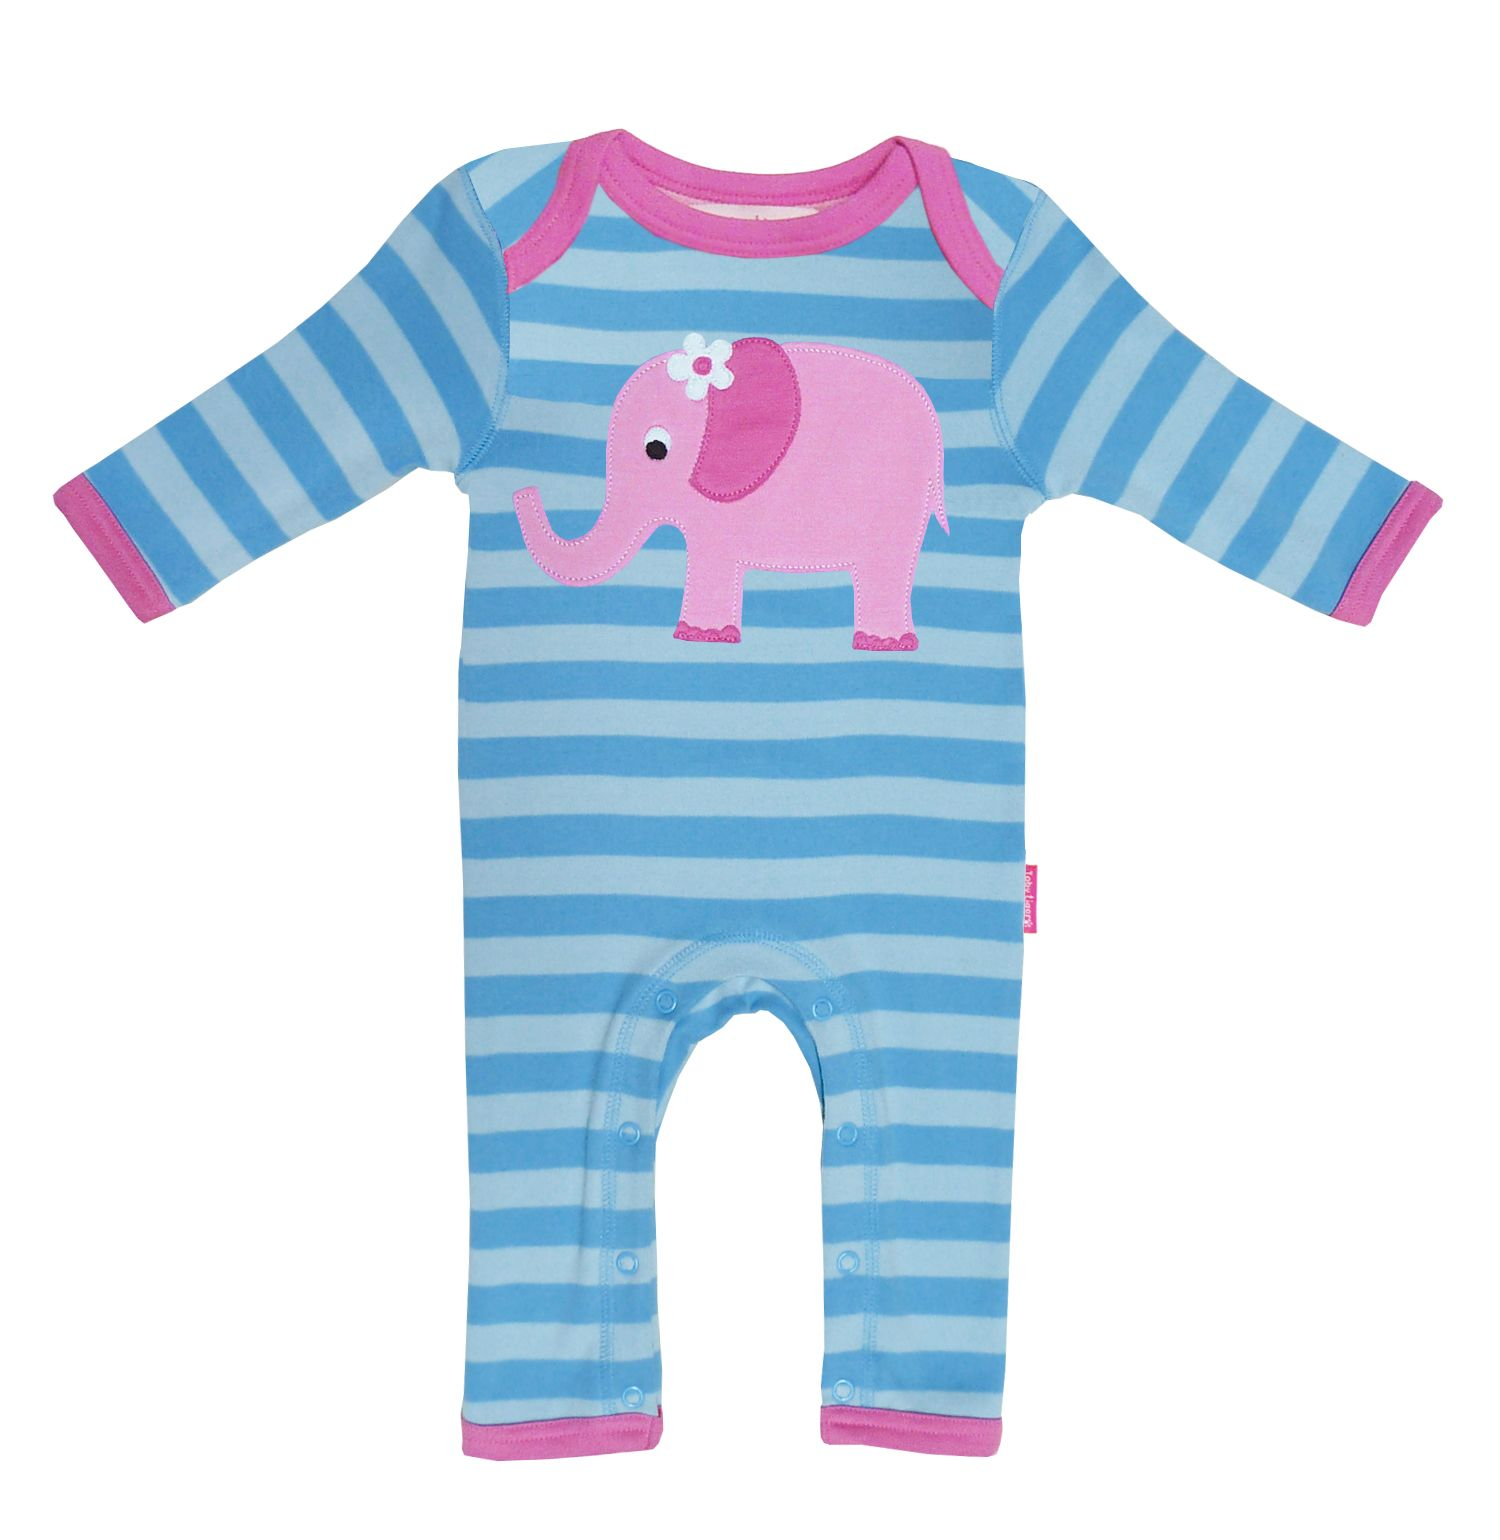 Toby Tiger Baby organic cotton elly sleepsuit, Blue